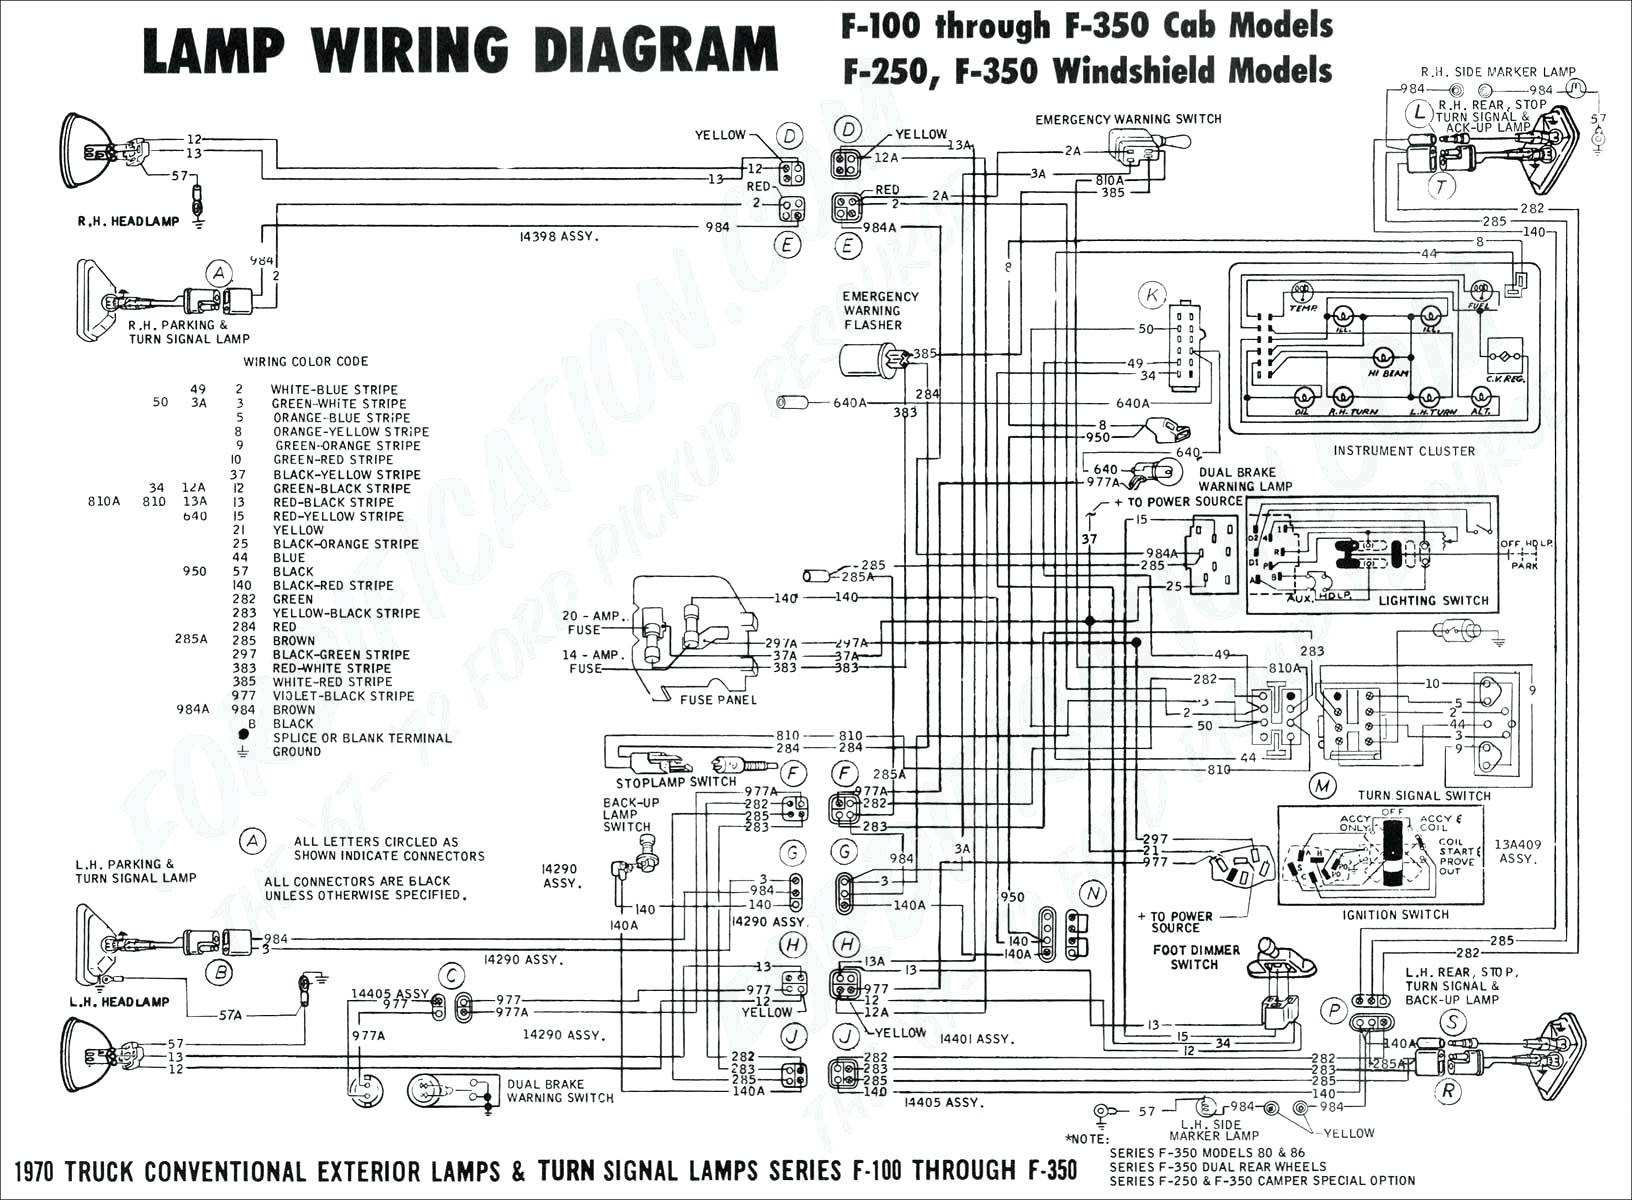 1996 Chevy S10 Wiring Diagram 1997 Chevy S10 Wiring Diagram Collection Of 1996 Chevy S10 Wiring Diagram